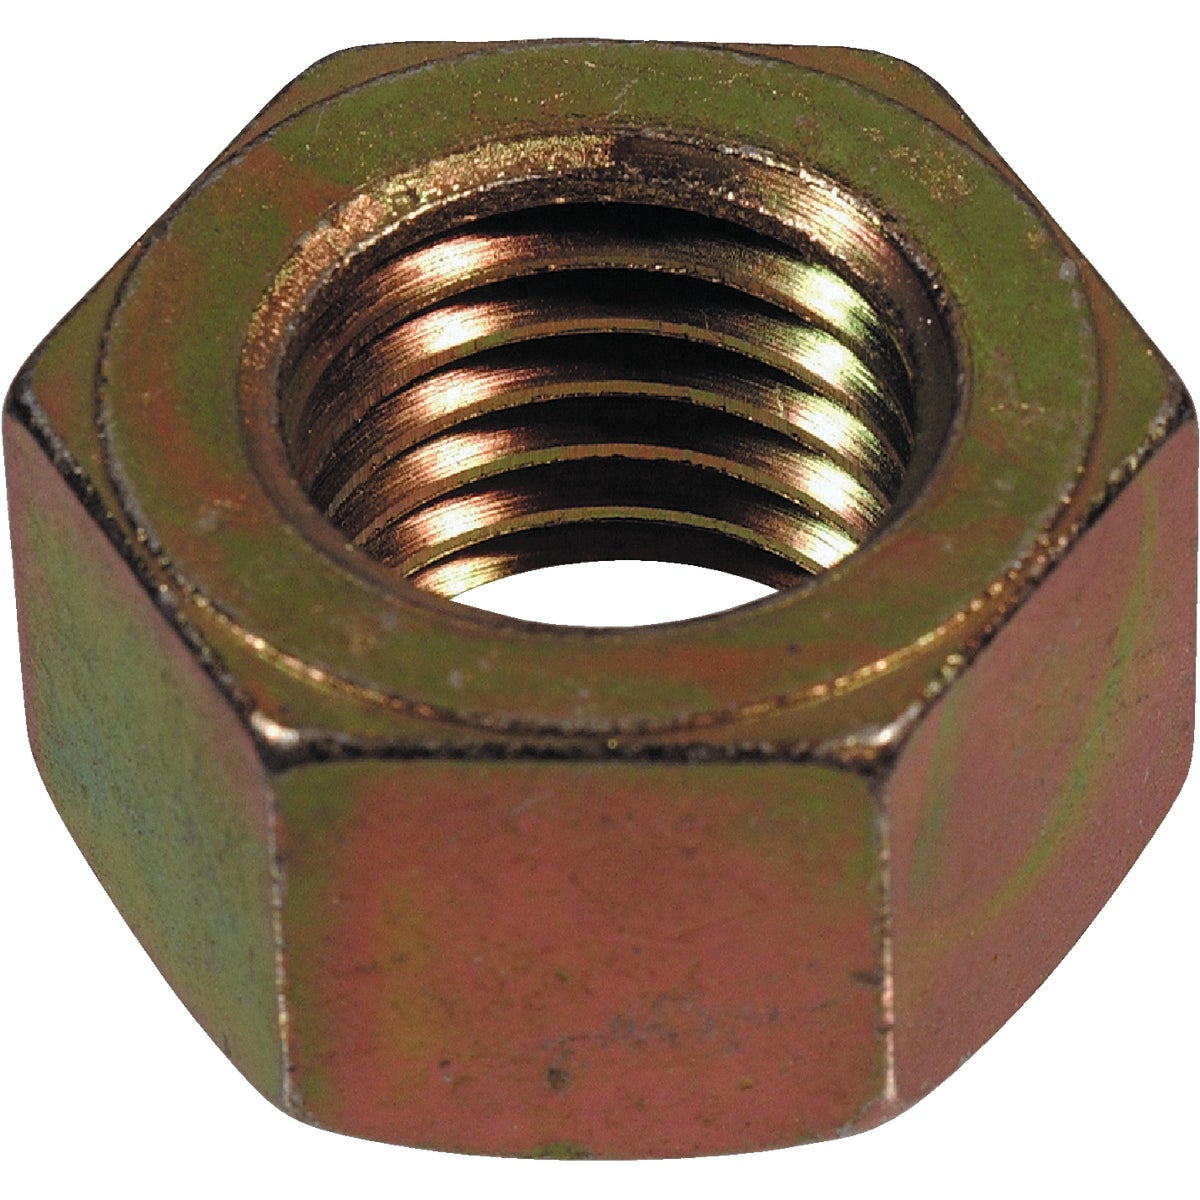 1/2-13 YC G8 HEX NUT - 180412 by Hillman Fastener